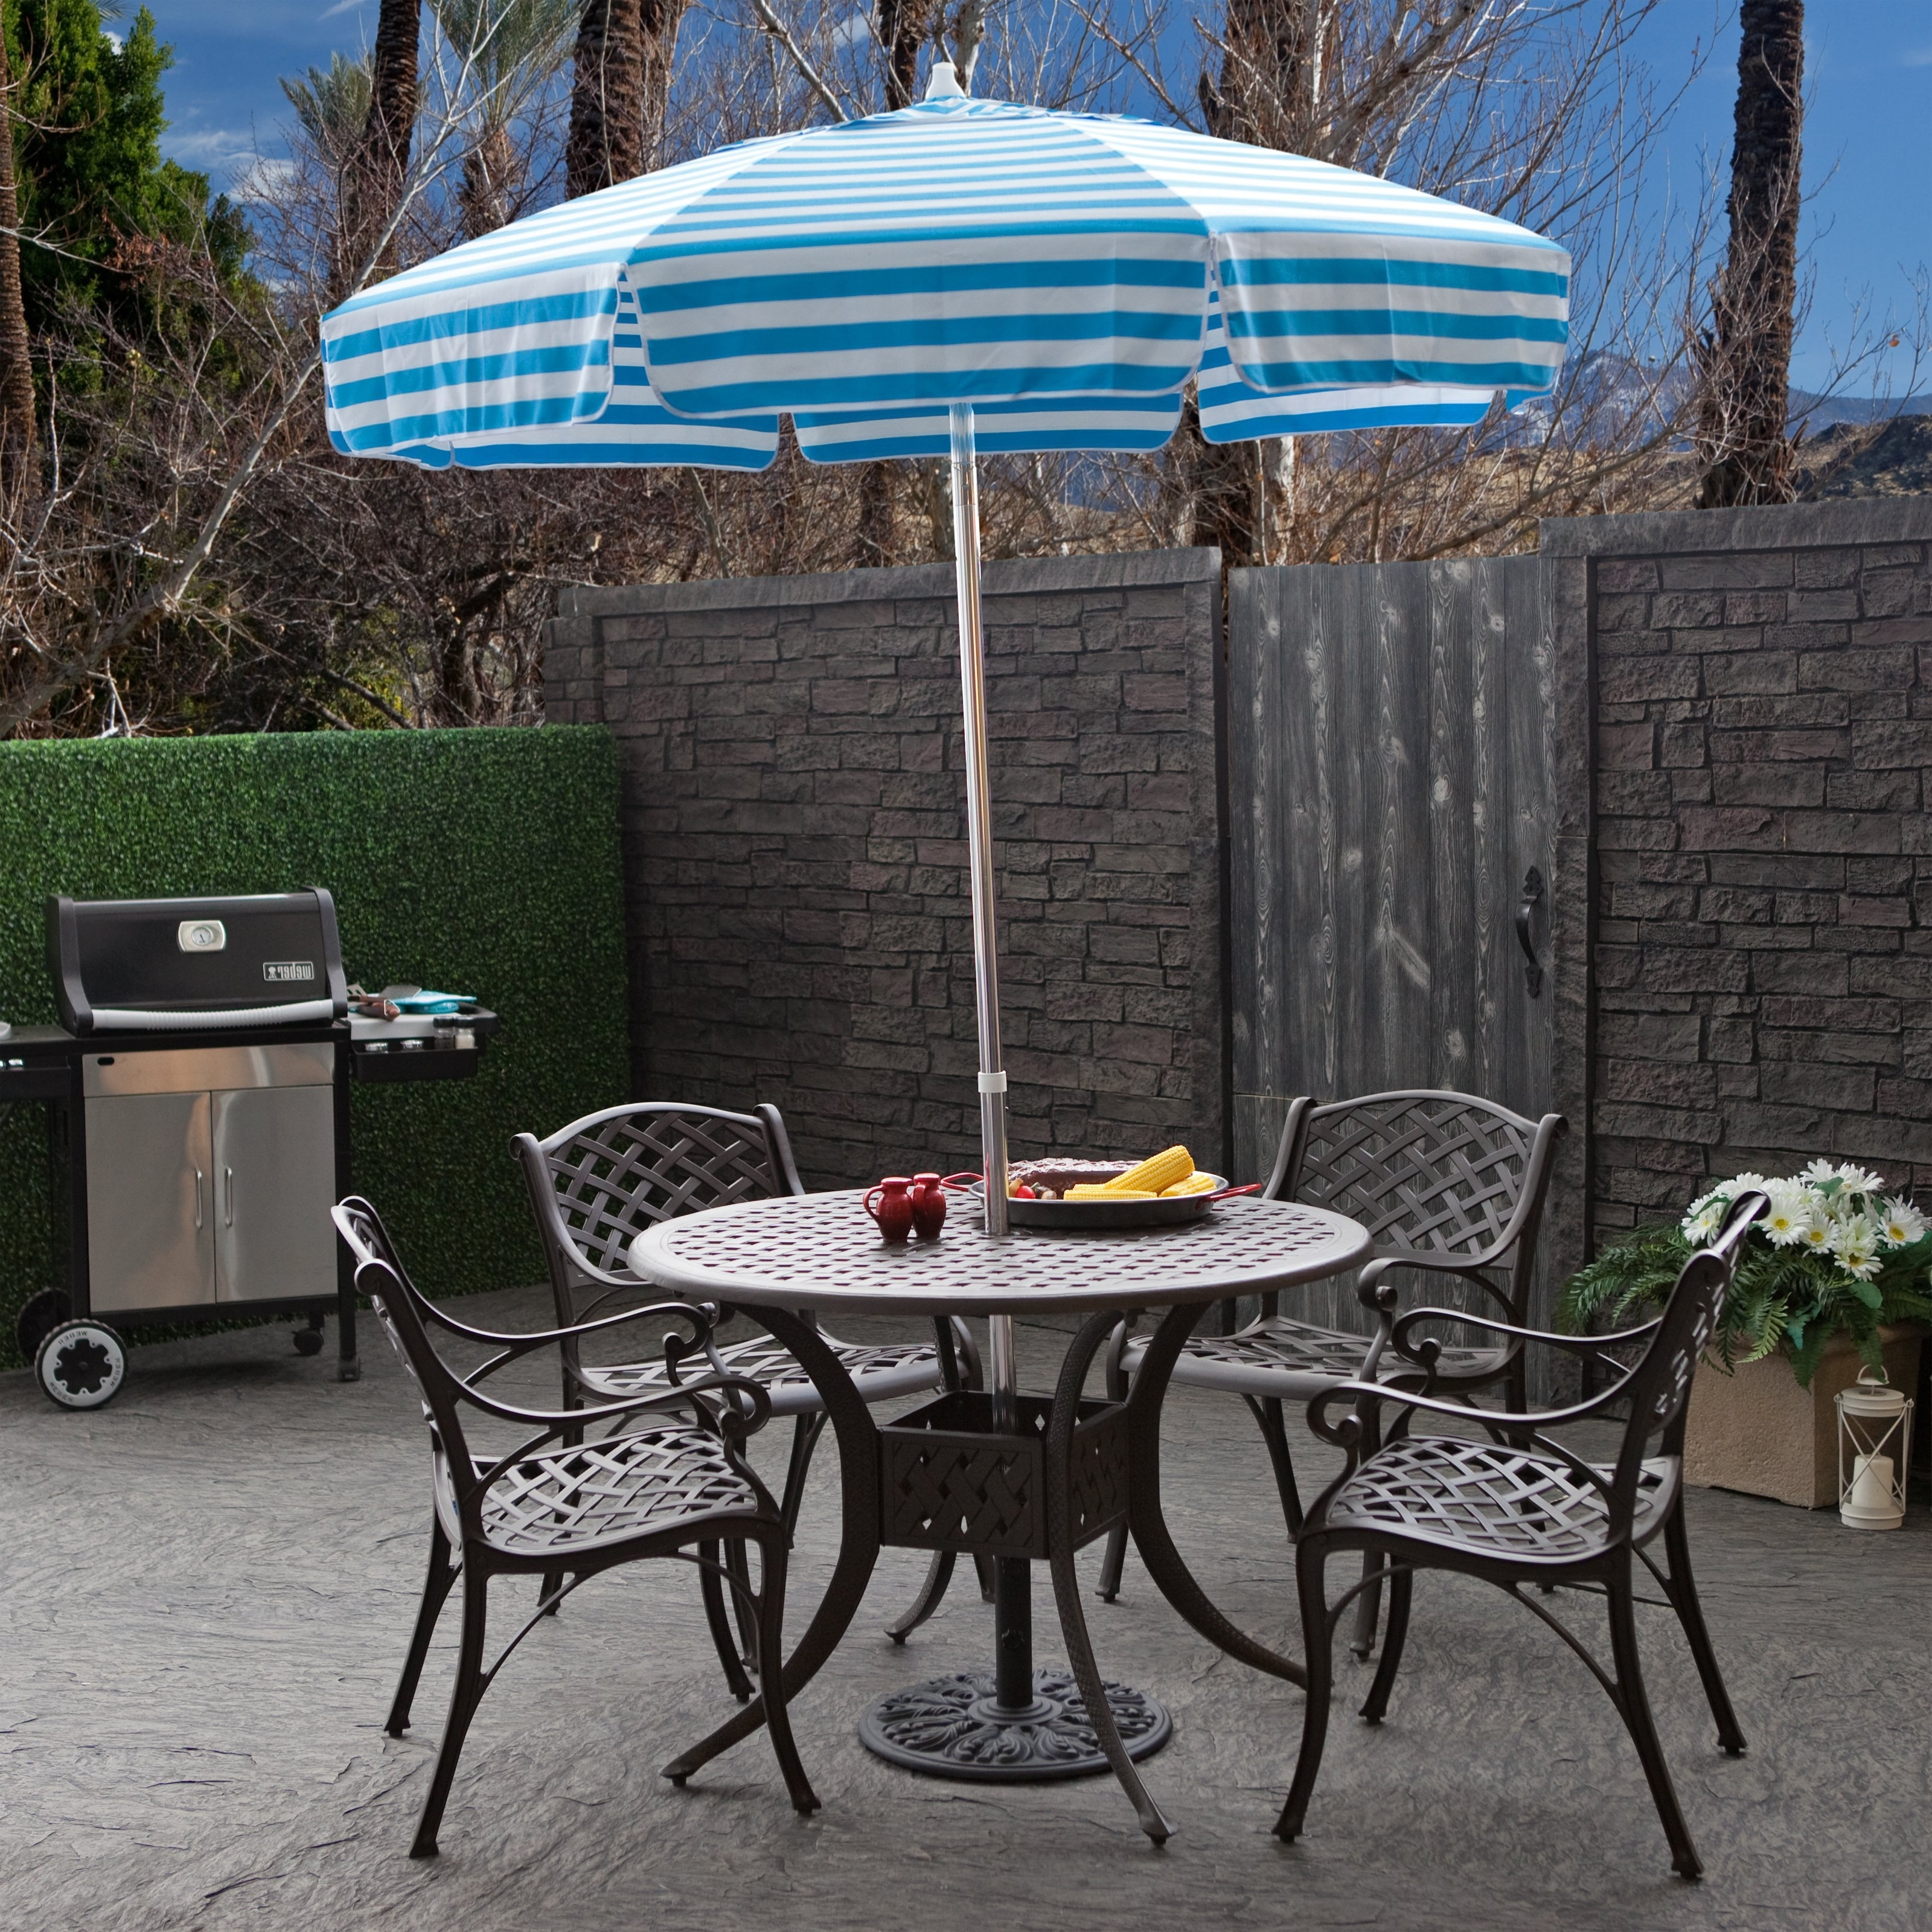 Famous Incredible Patio Table Umbrellas Destinationgear 6 Ft Aluminum With Patio Furniture With Umbrellas (View 7 of 20)